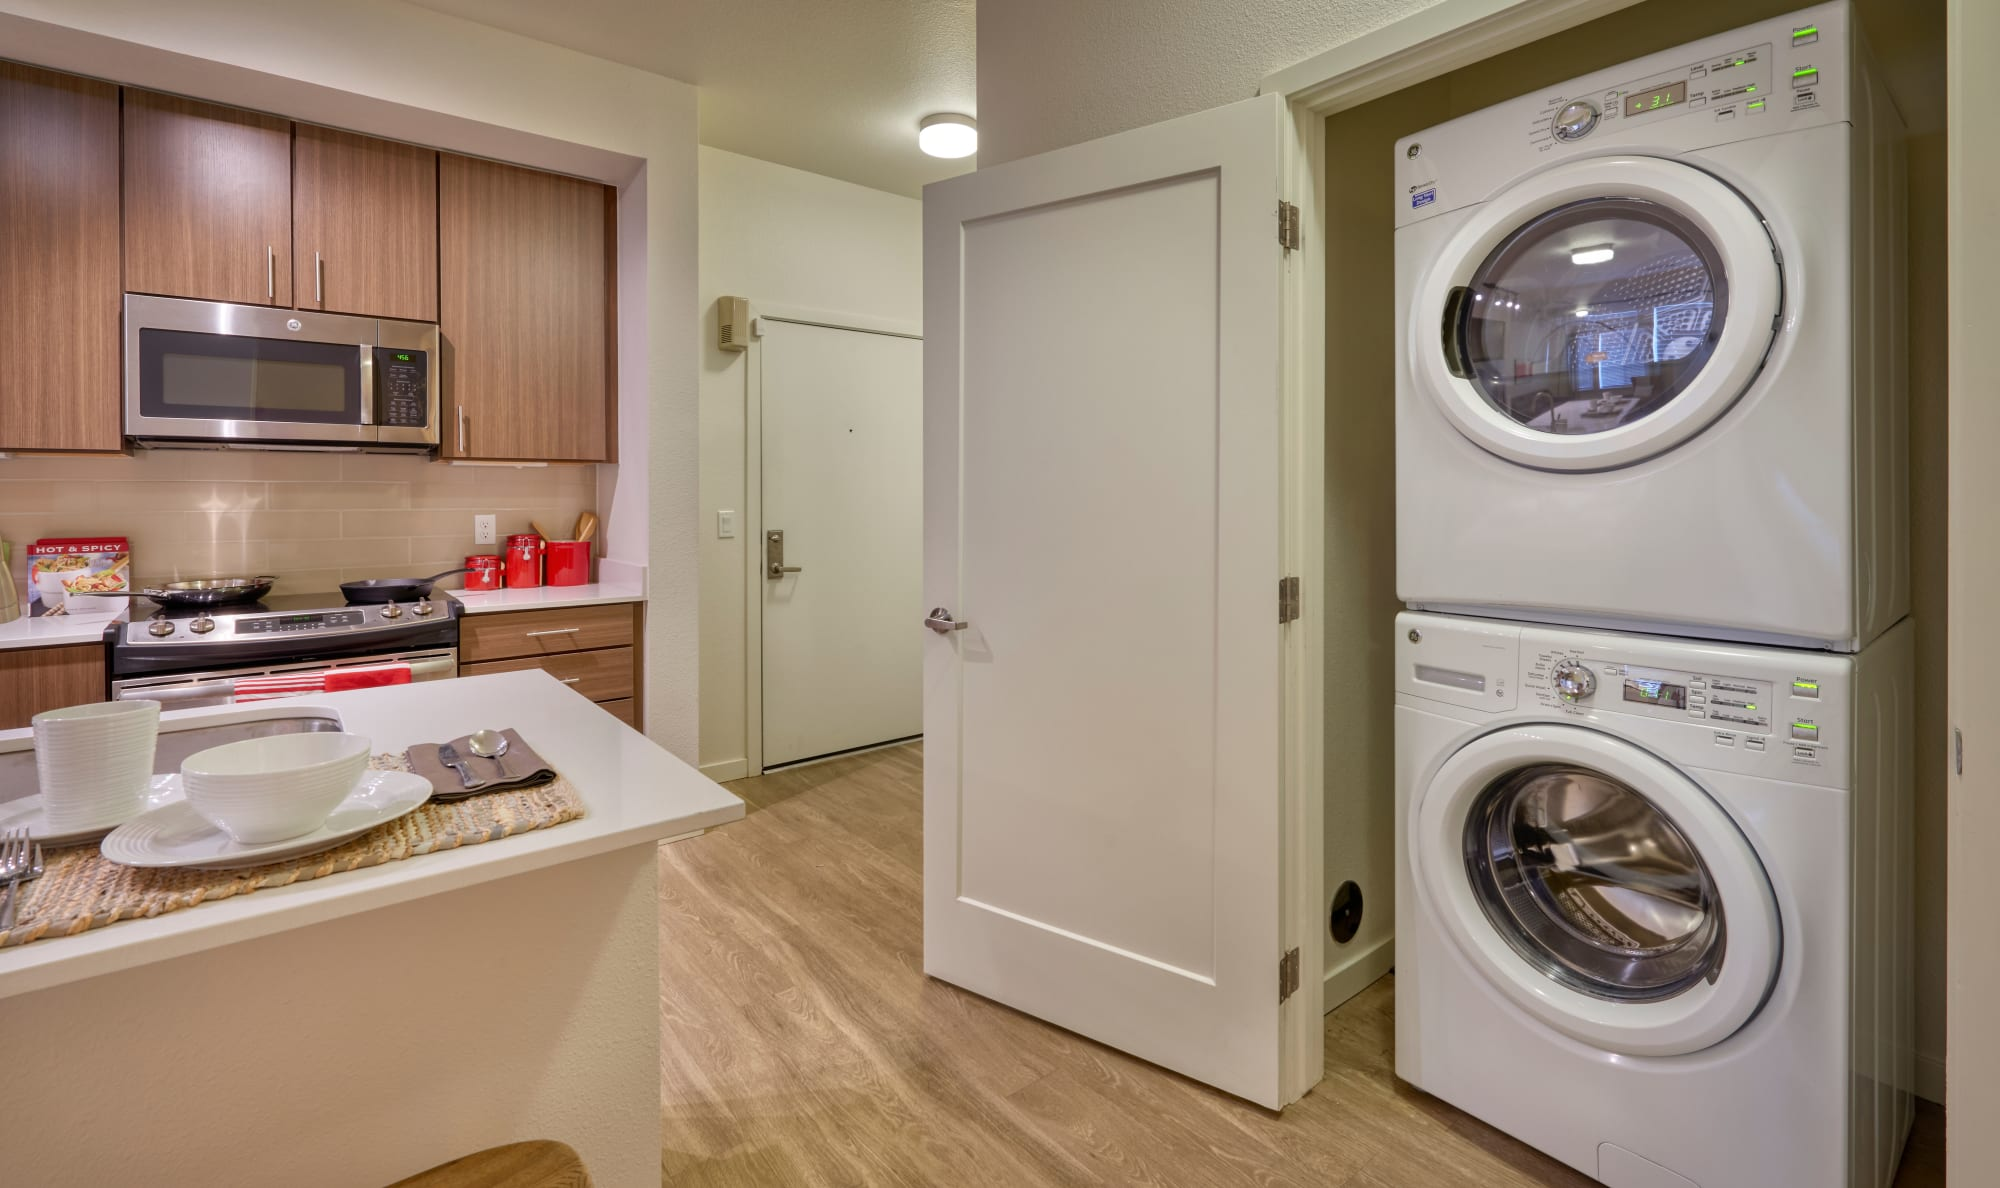 Washing Machine and Kitchen at Elevate in Englewood, Colorado